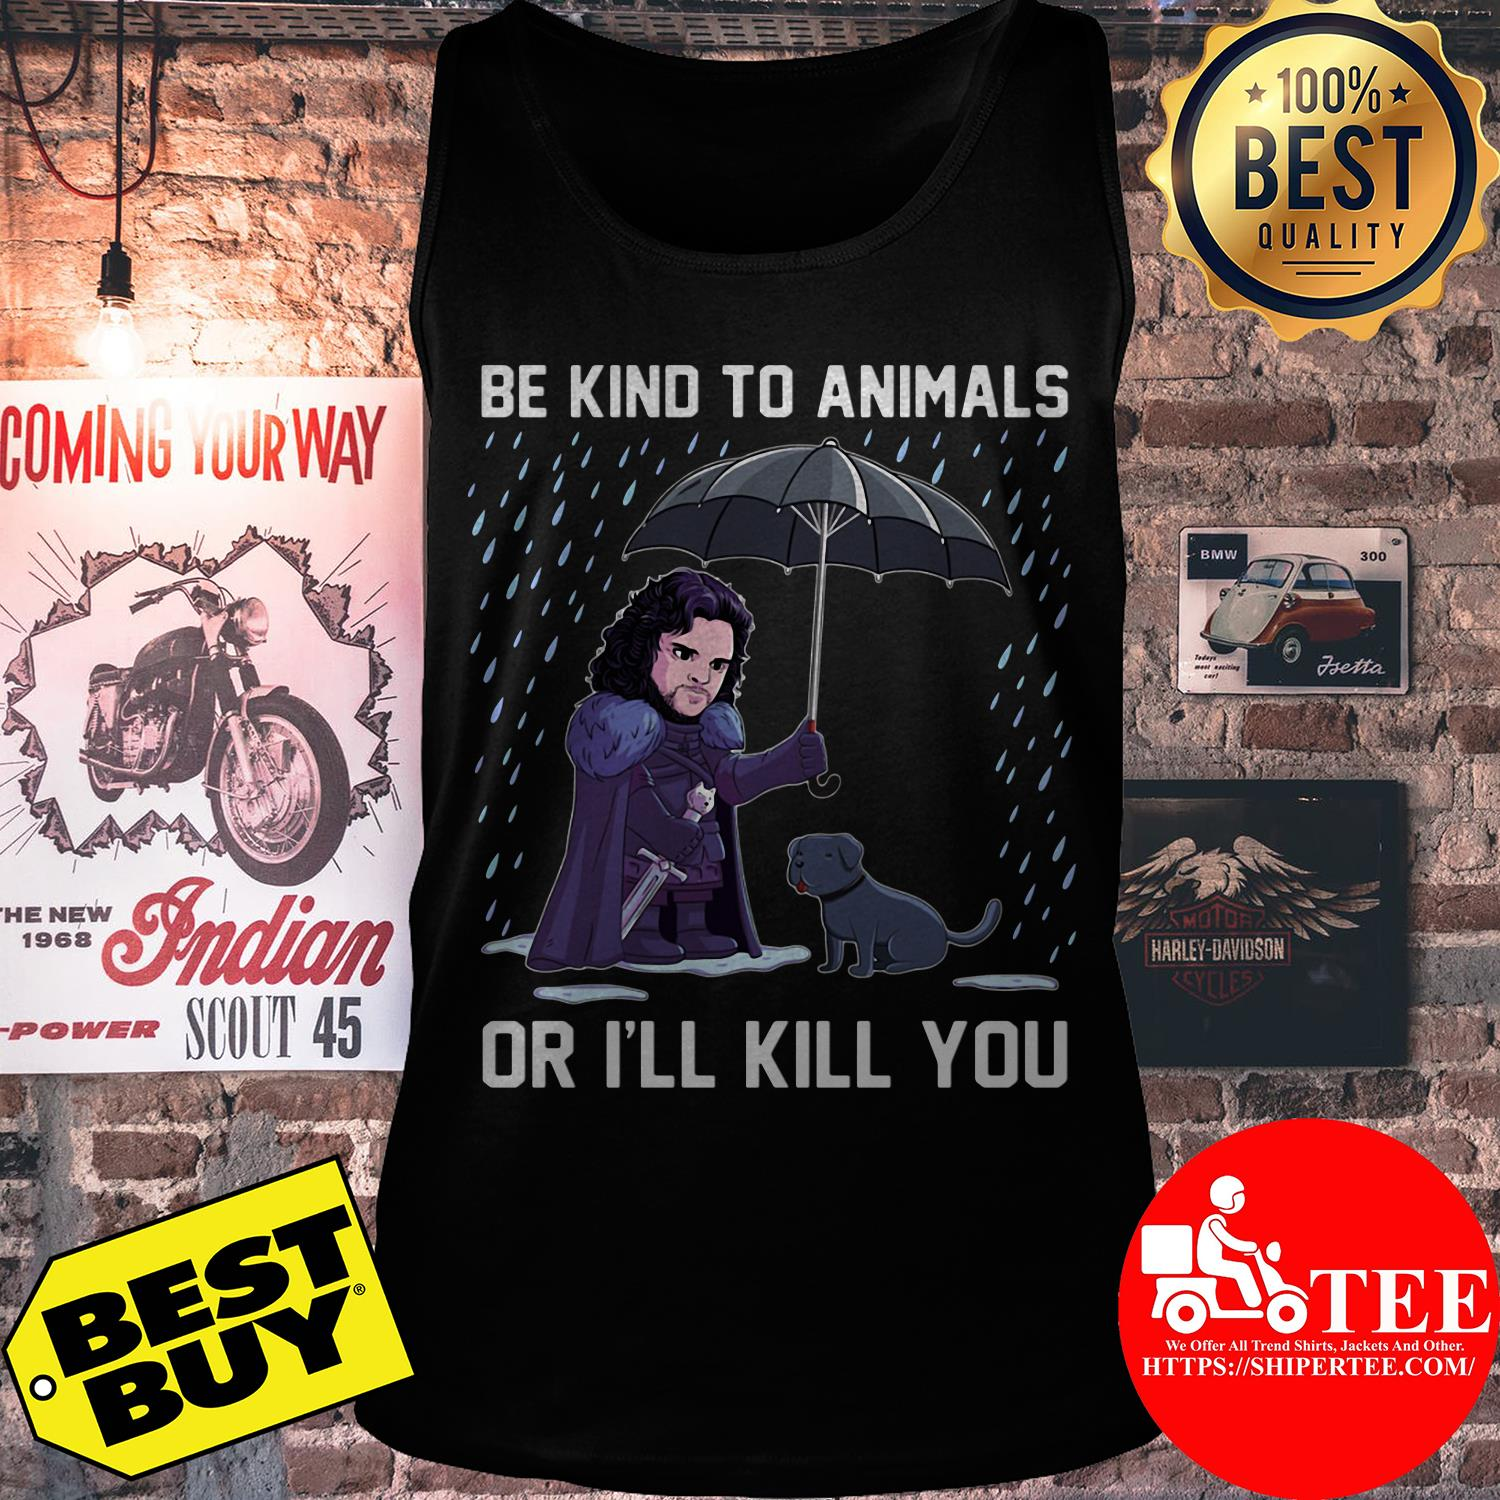 Be kind to animals or I'll kill you Jon Snow tank top